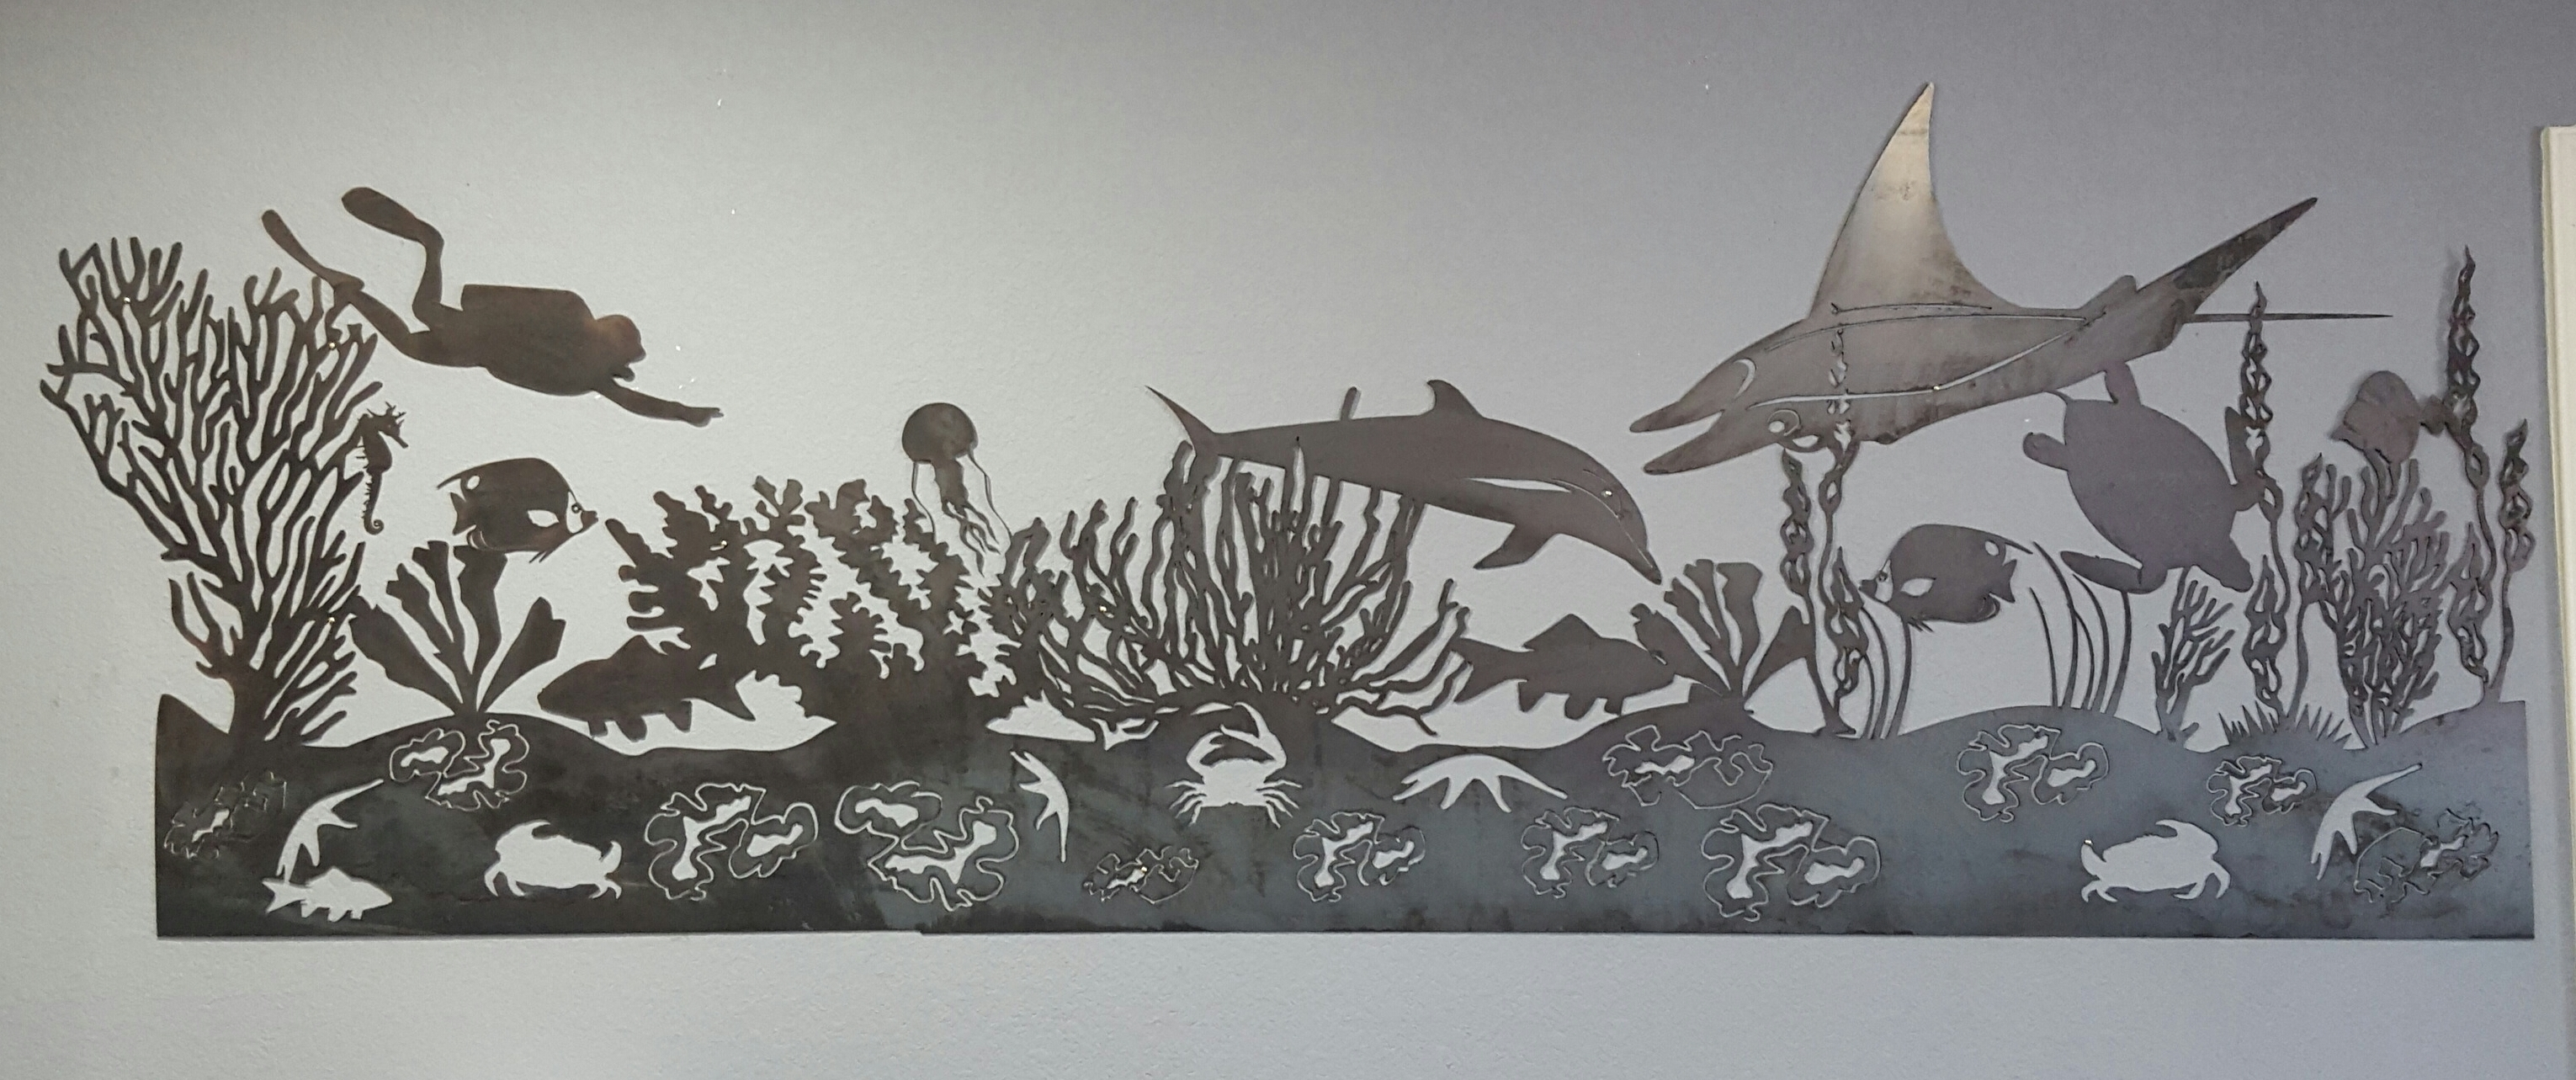 Sea Life Mural Metal Wall Art (View 9 of 15)